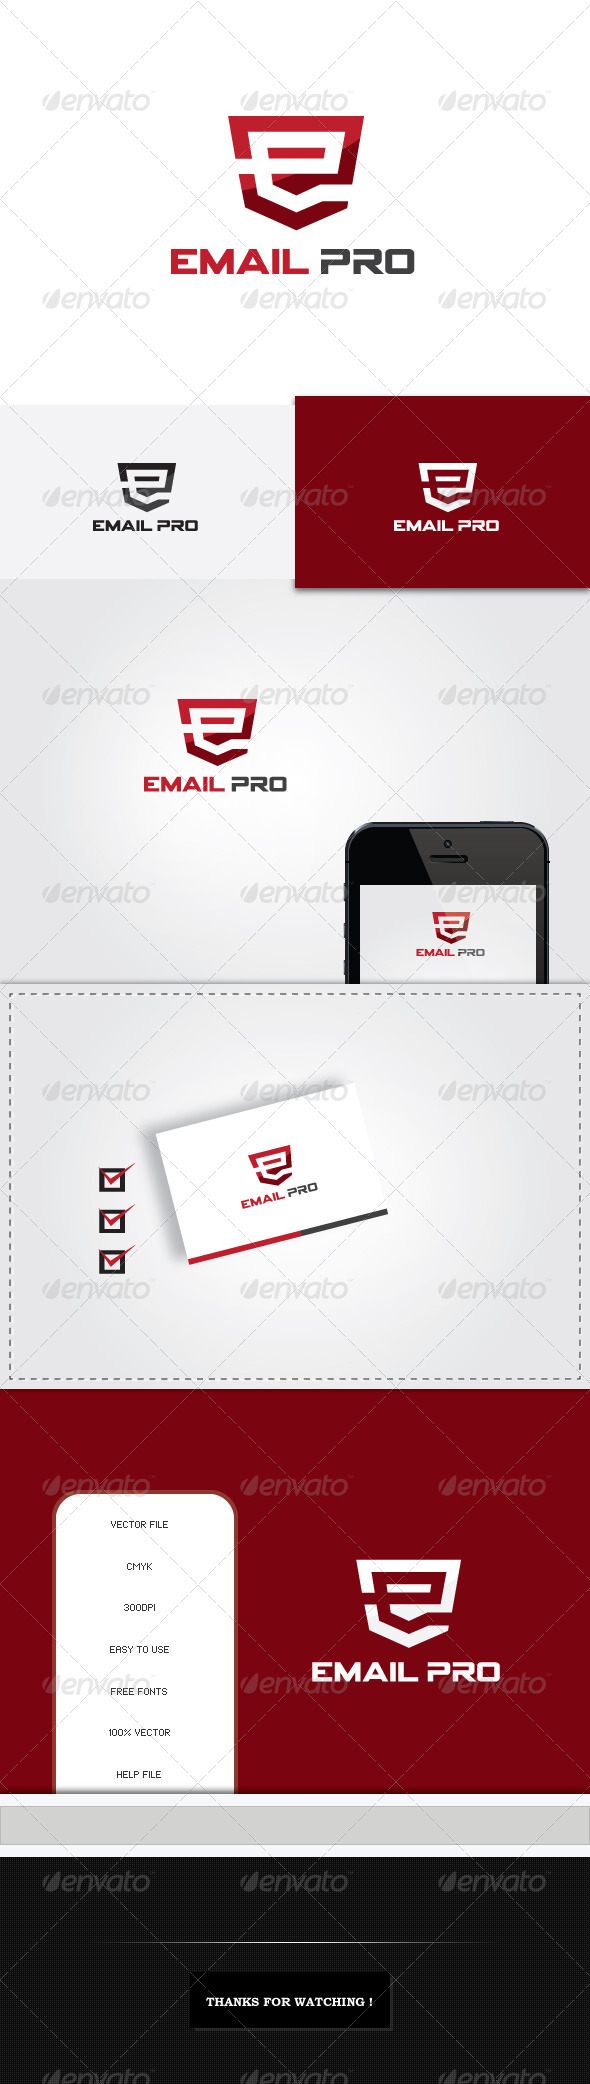 GraphicRiver Email Pro Logo Template 5446537